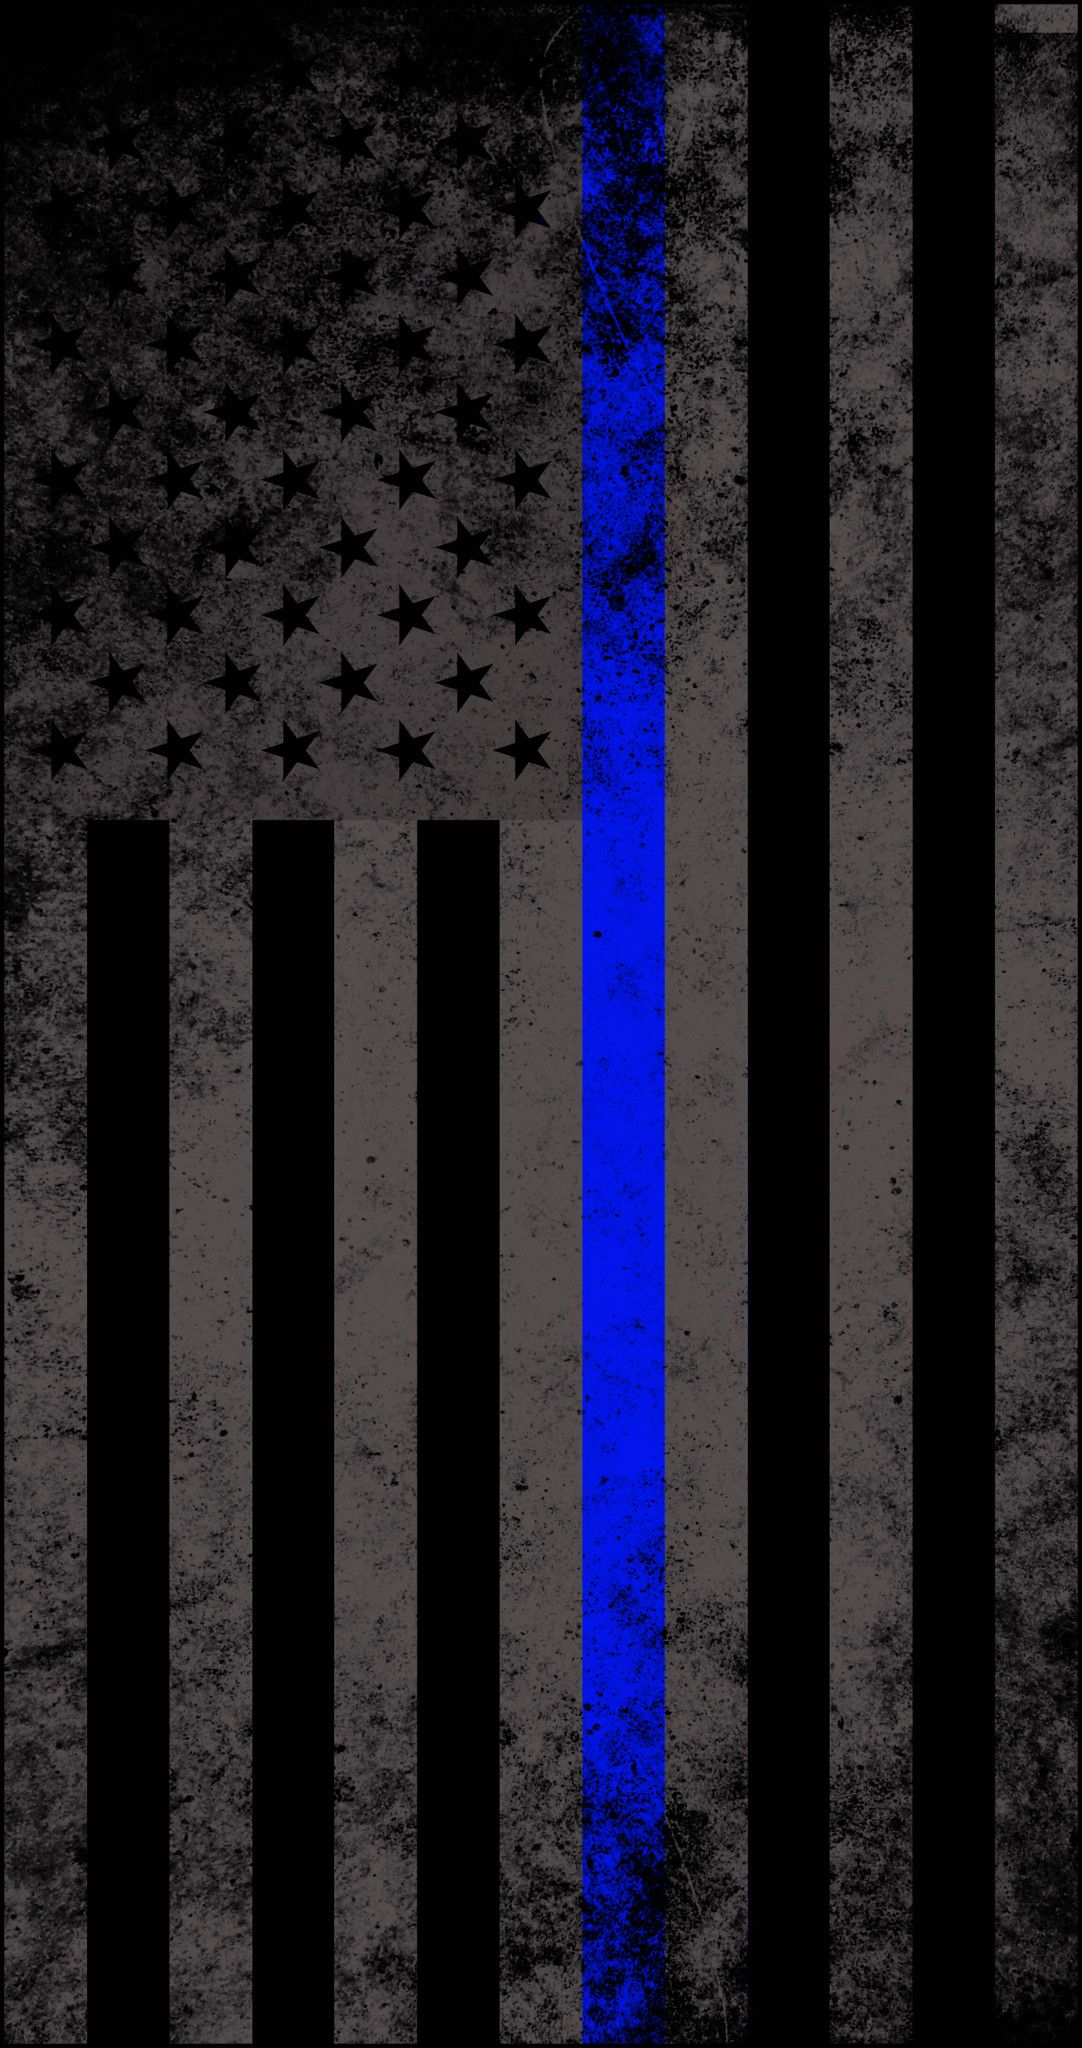 Res 1082x2048, American Subdued Thin Blue Line Flag Decal